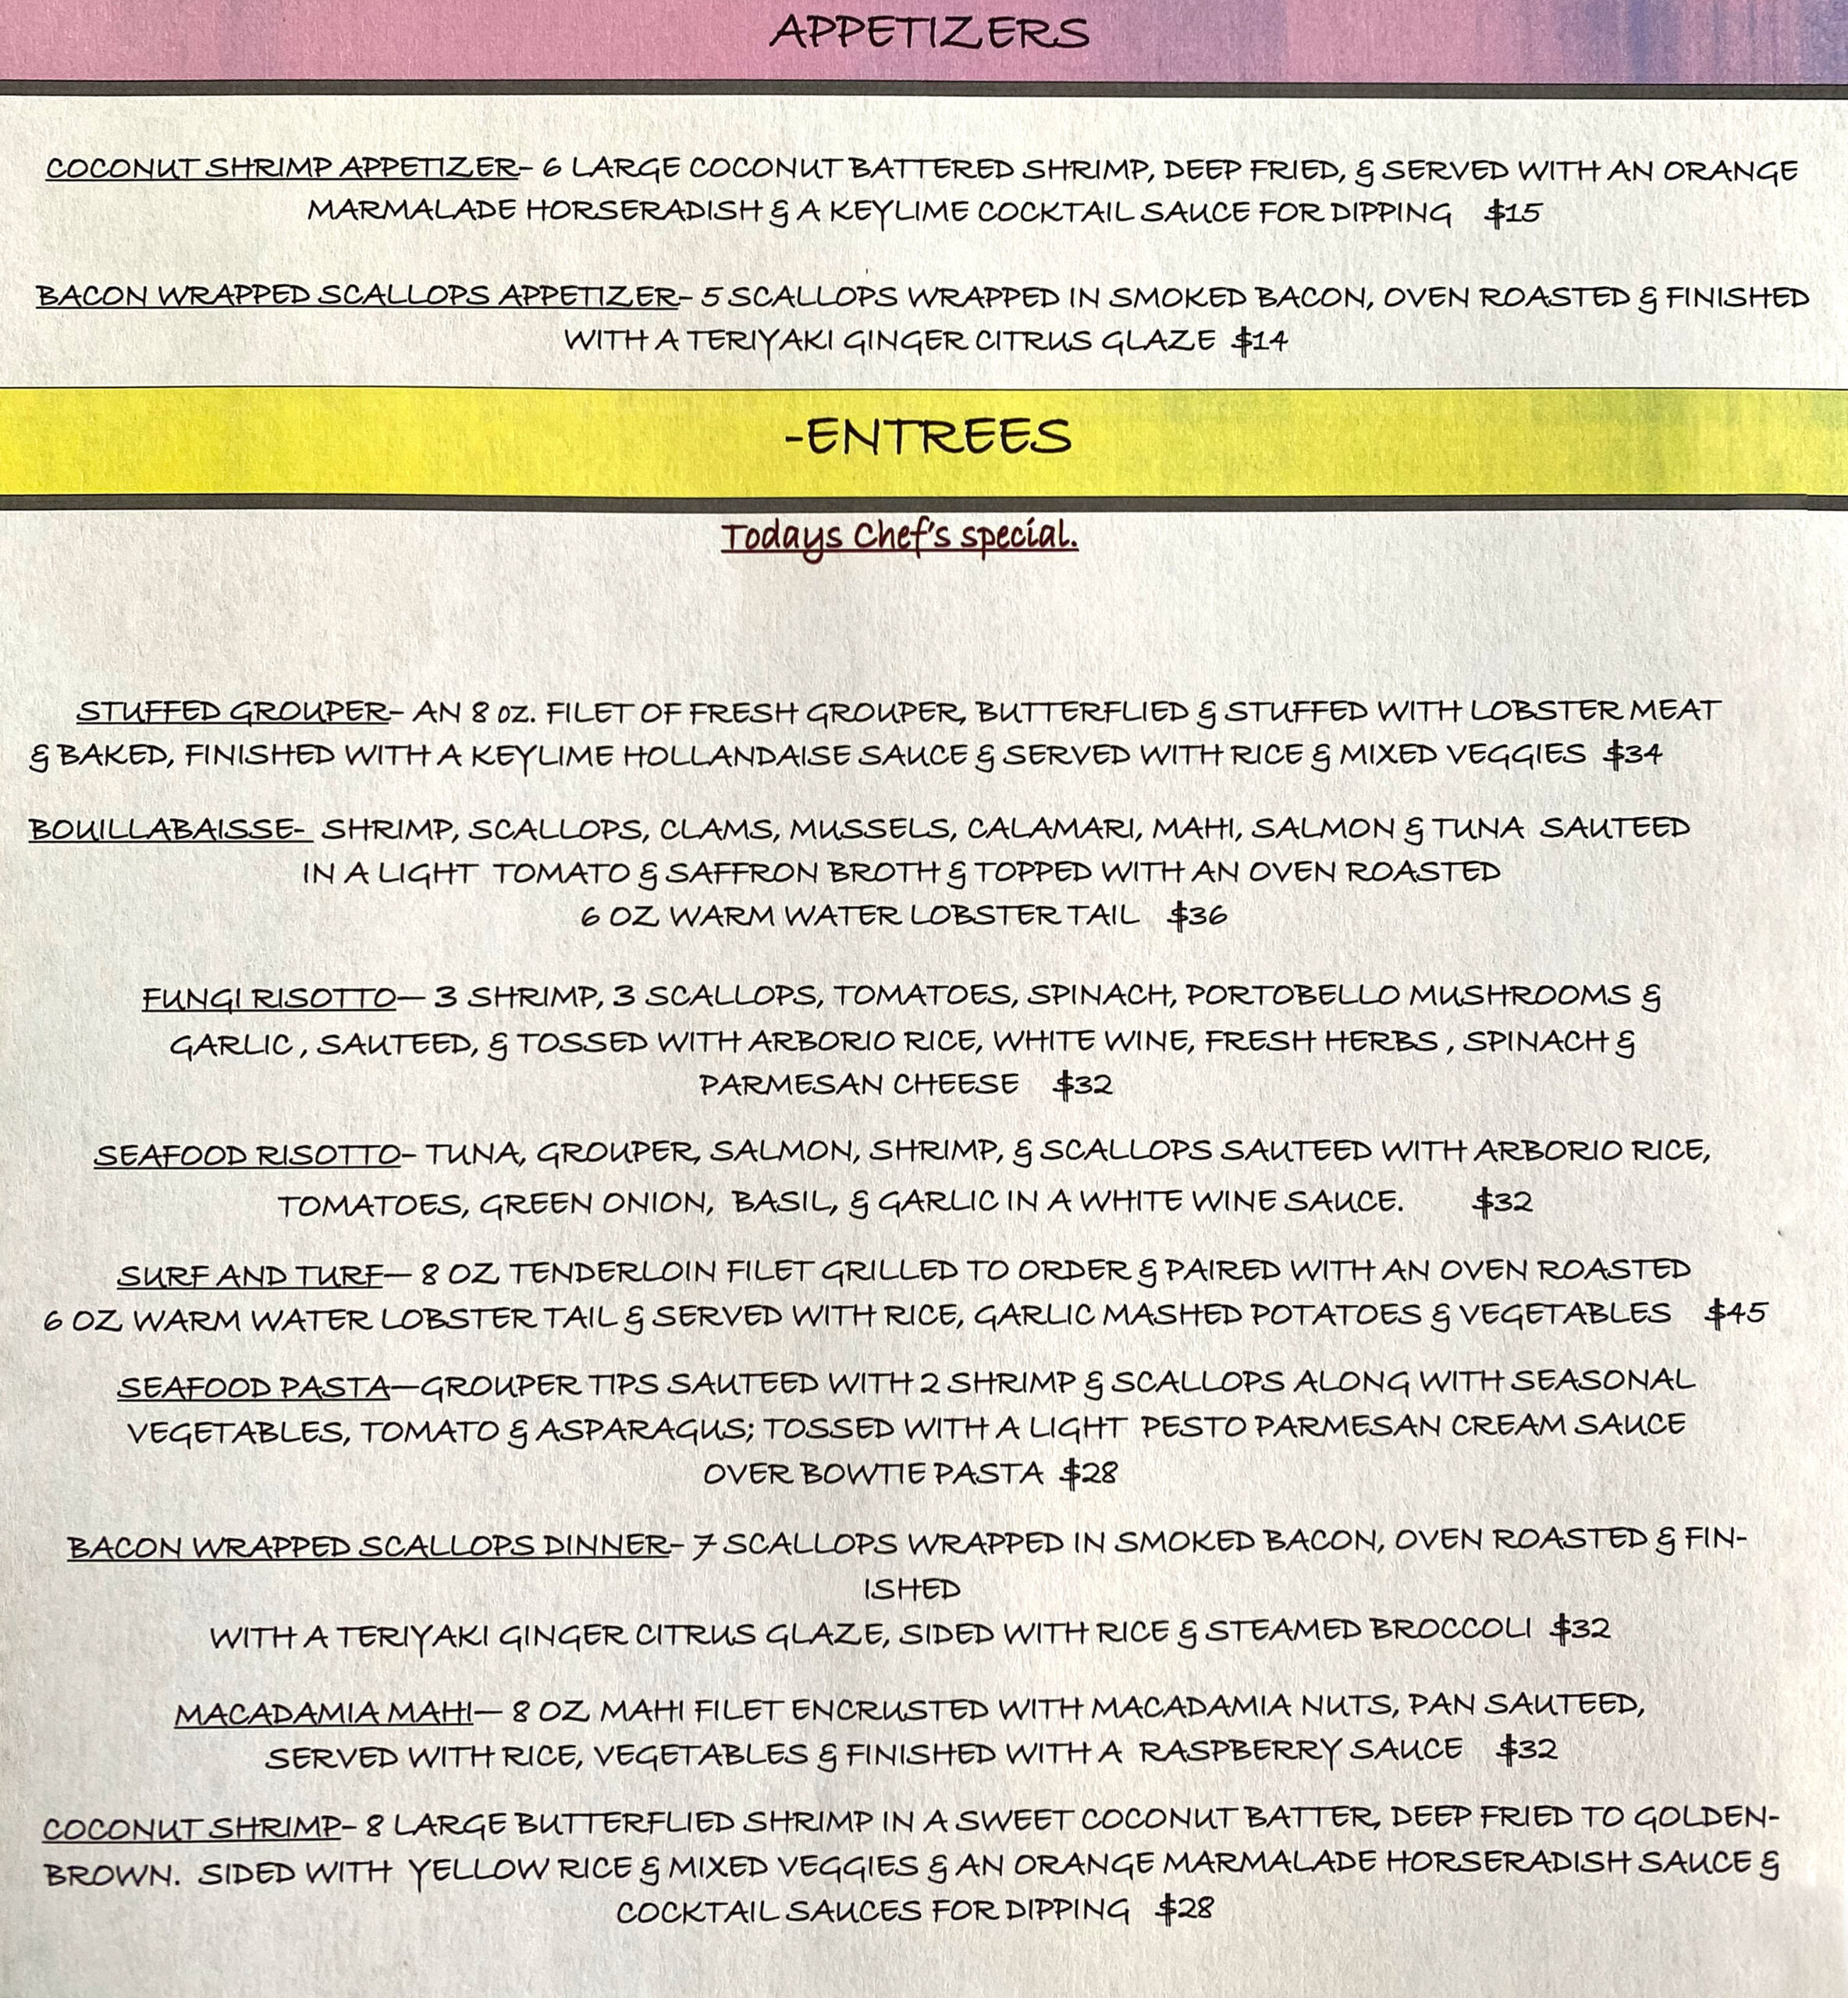 Keylime Bistro Restaurant Specials Menu | Restaurants on Captiva